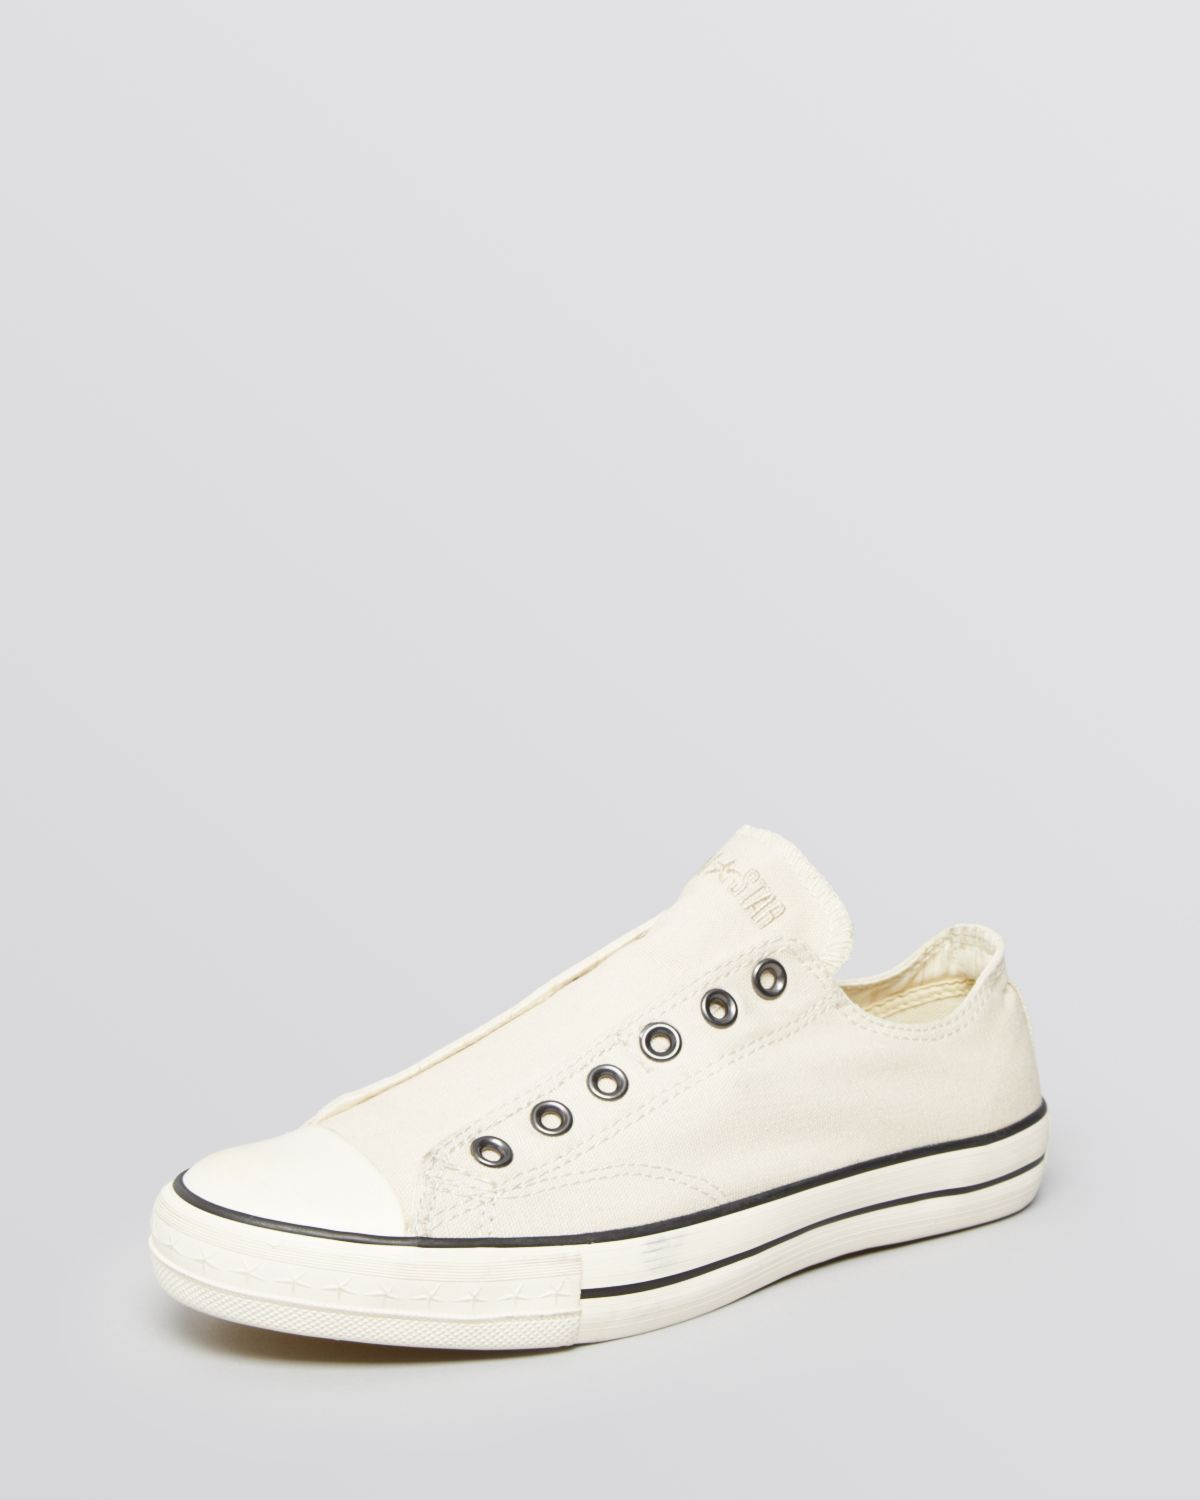 3660adf7d62 Lyst - Converse Chuck Taylor Vintage Slipons in White for Men